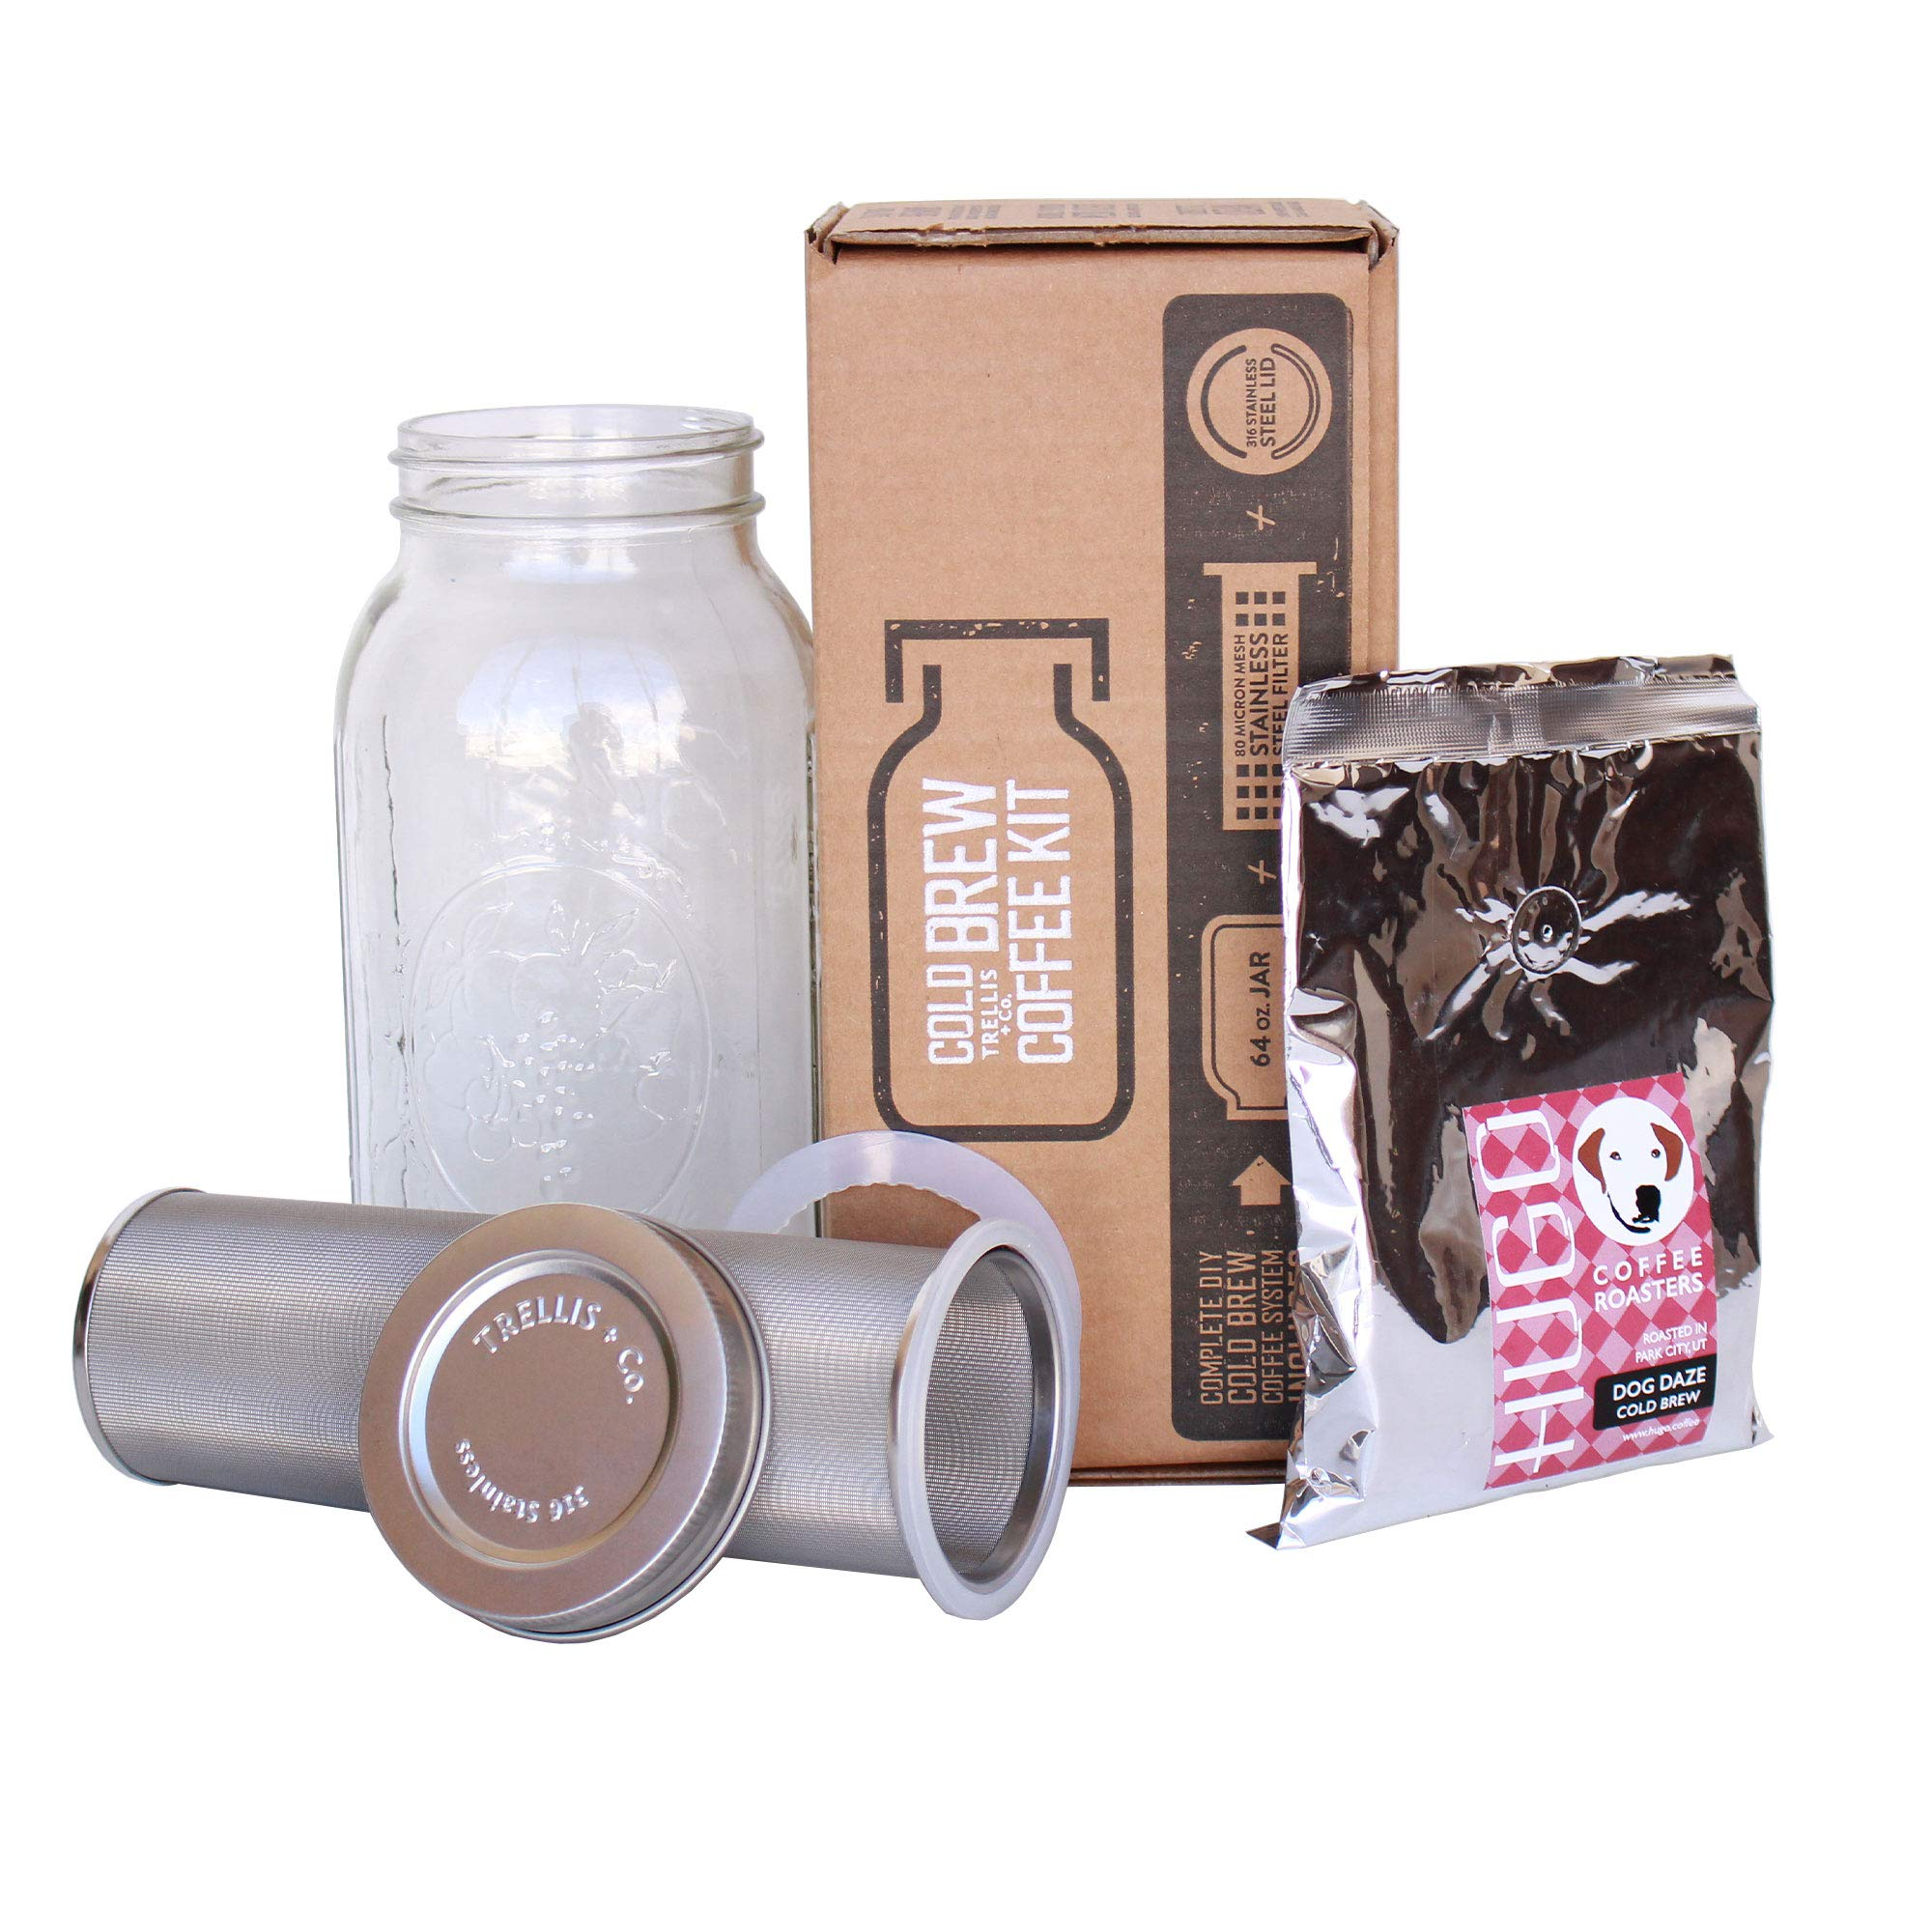 T&Co. Cold Brew Coffee Maker Kit with 64 Oz Mason Jar, Stainless Steel Filter & Lid, Coffee - 80 Micron Woven Filter, Lid & Gaskets, Instructions - Cold Brewed Coffee/Iced Tea Kit by Trellis + Co.